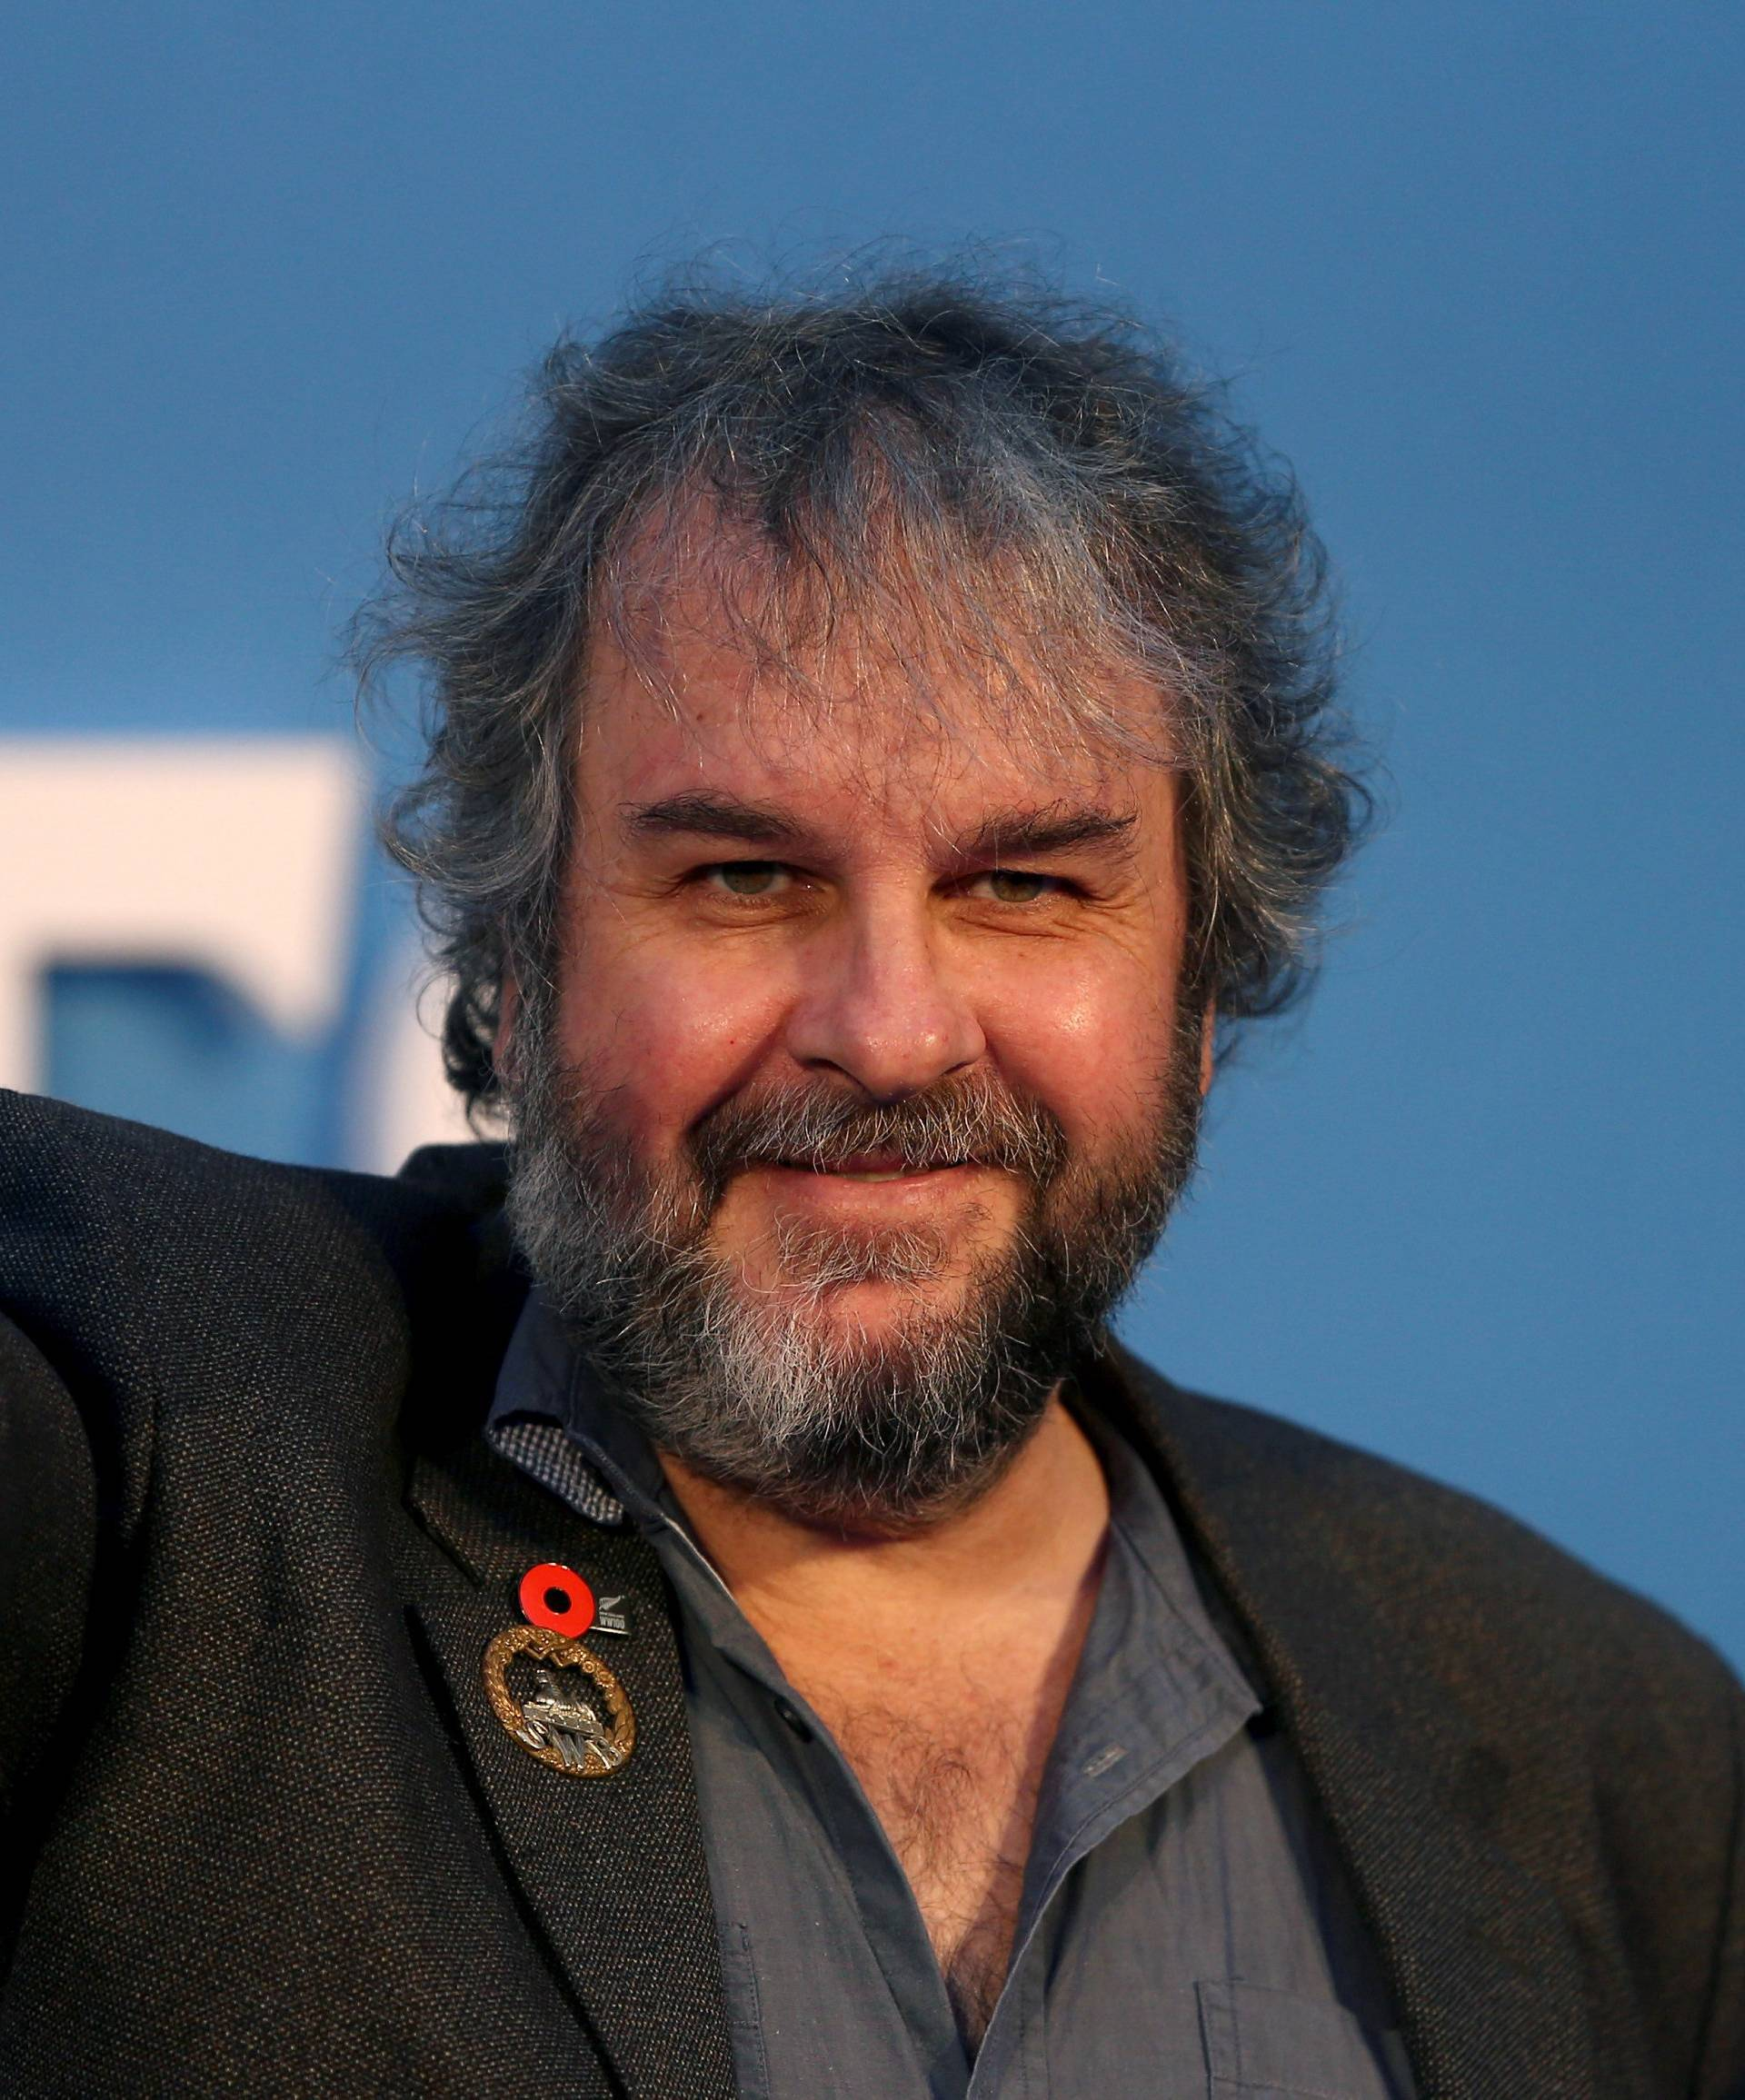 FILE PHOTO: Director Peter Jackson attends the world premiere of 'The Beatles: Eight Days a Week - The Touring Years' in London